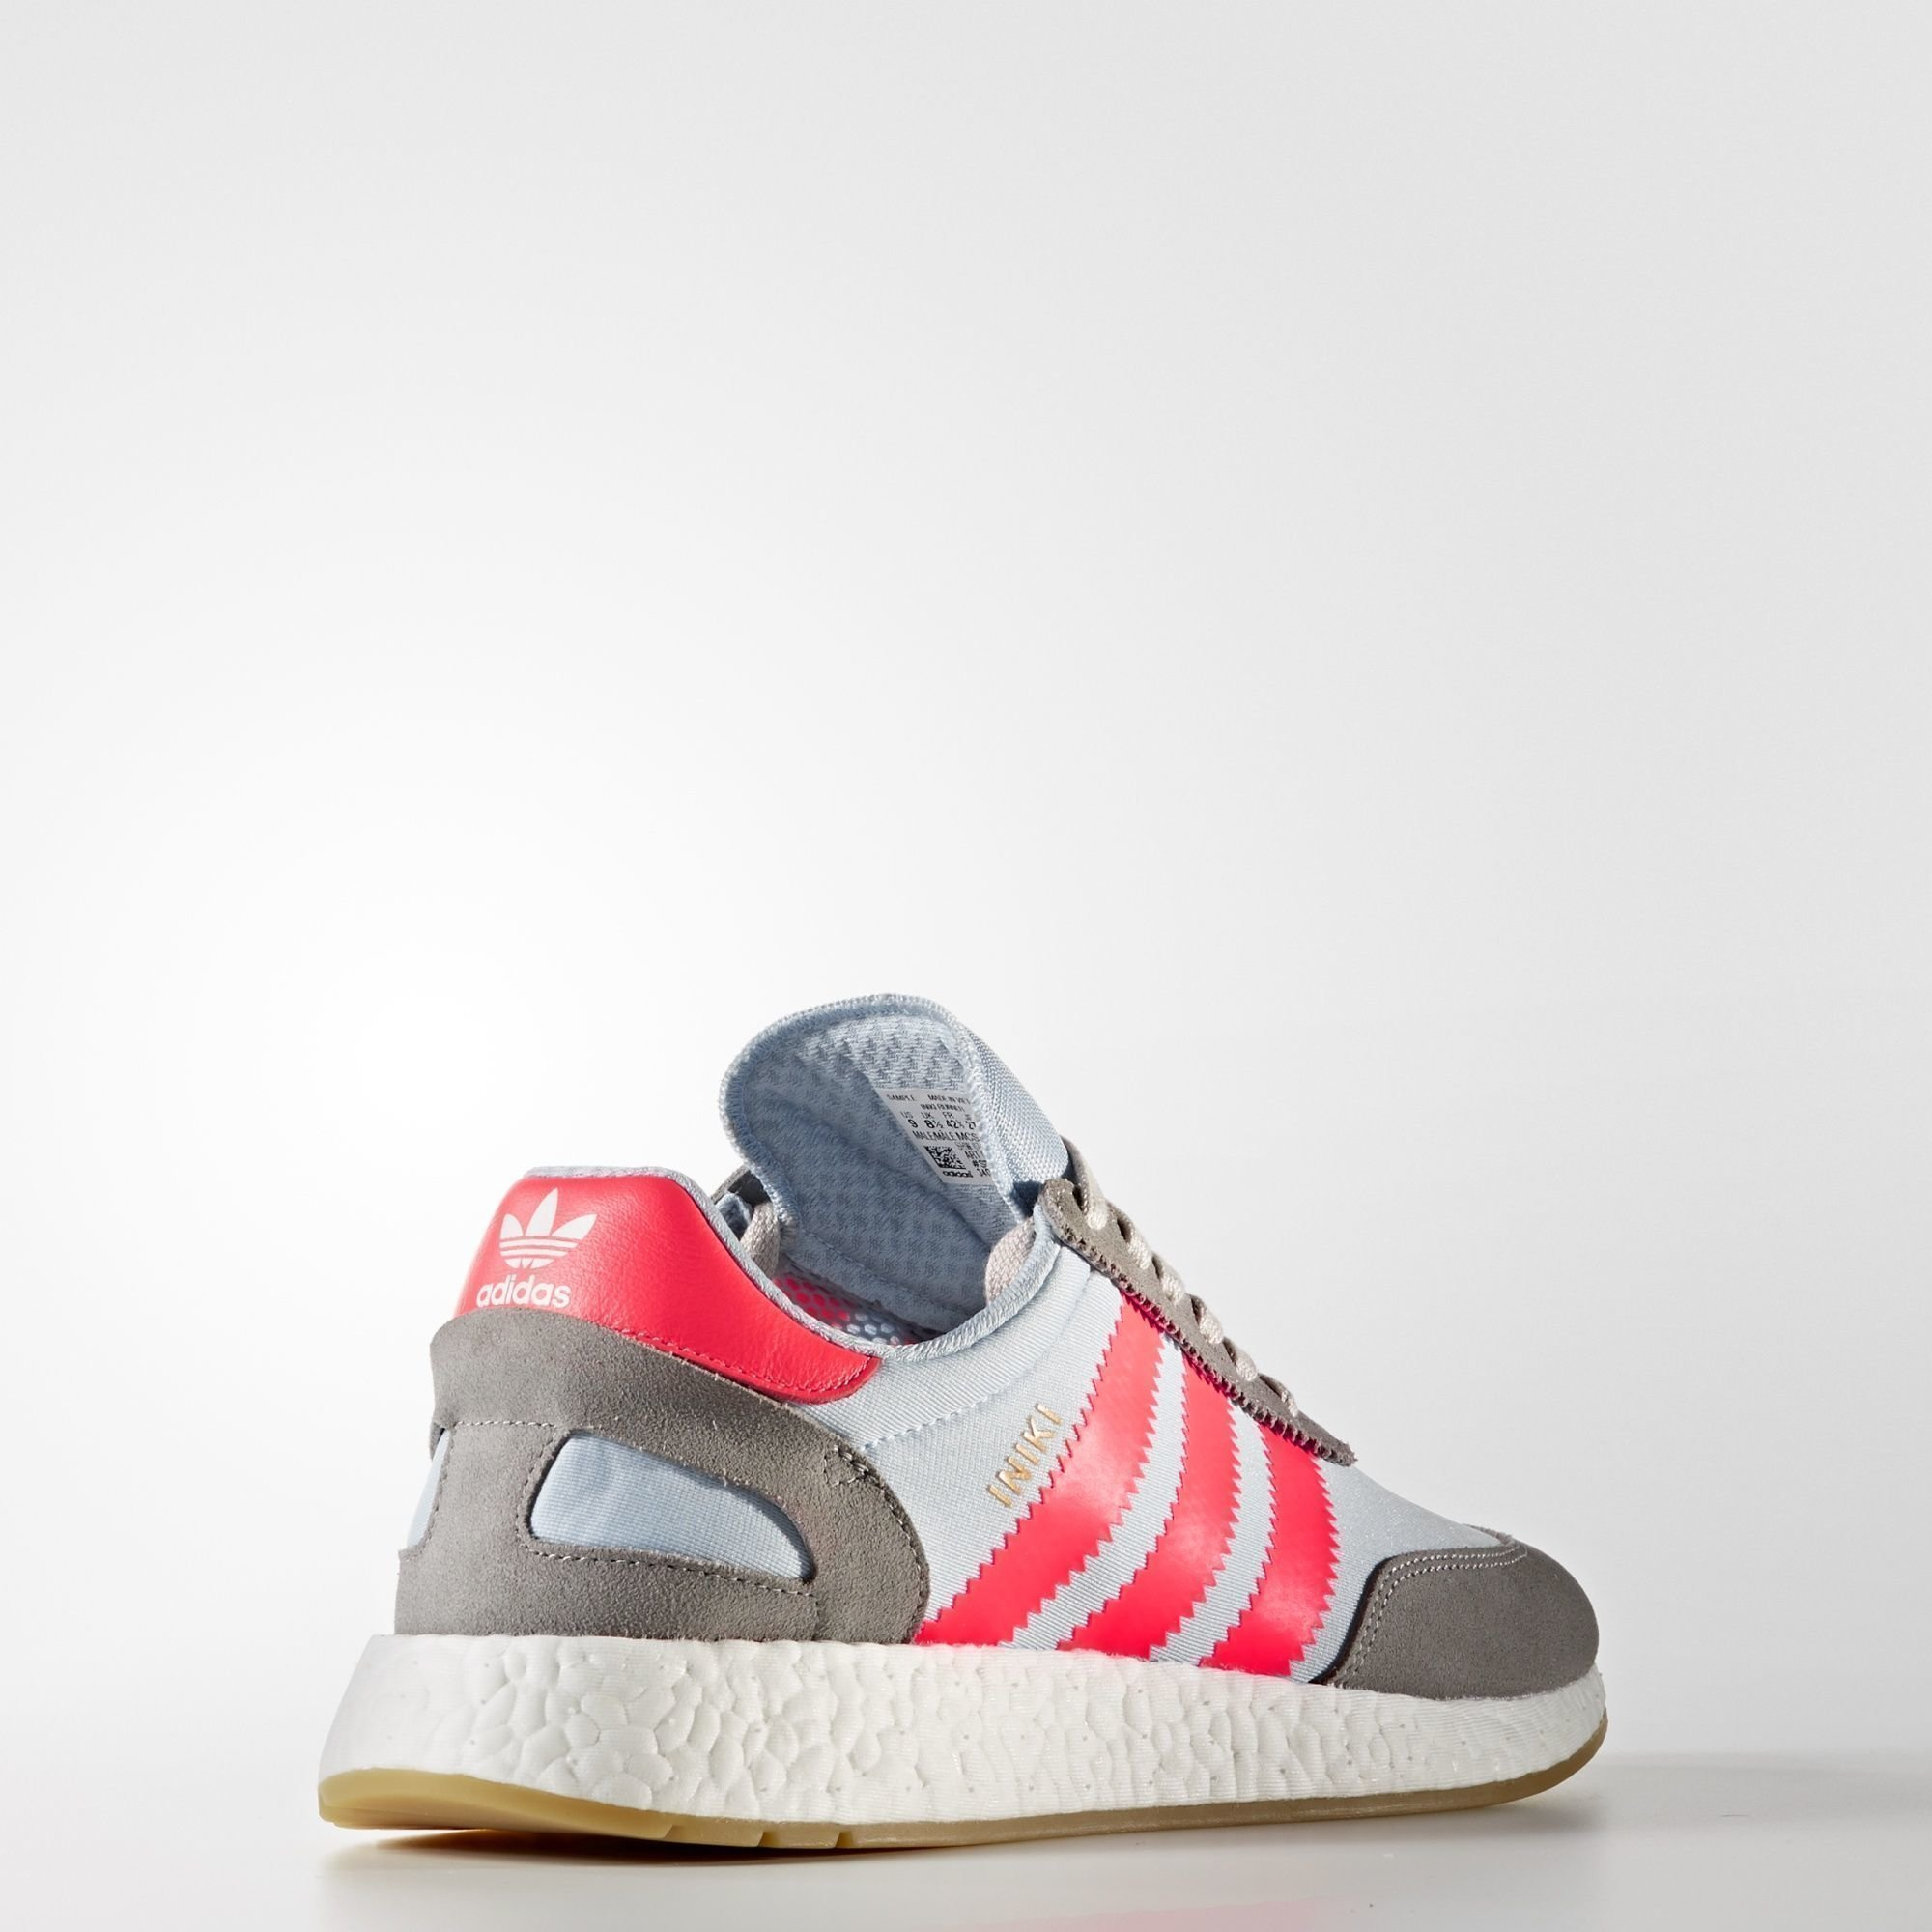 adidas Iniki Runner Grey Turbo (BB2098)